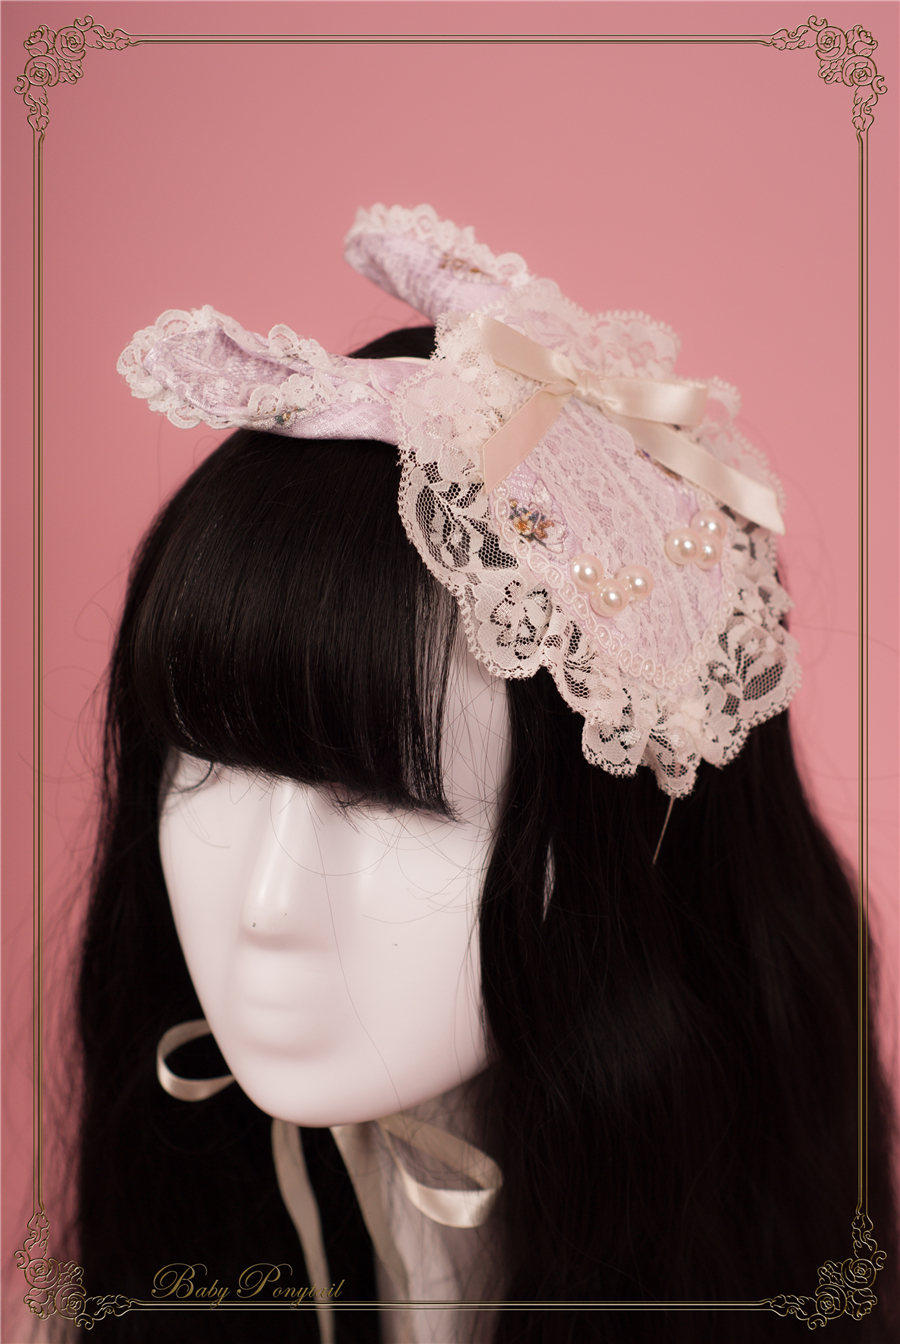 BabyPonytail_Stock Photo_My Favorite Companion_Bunny Head Dress_11.jpg